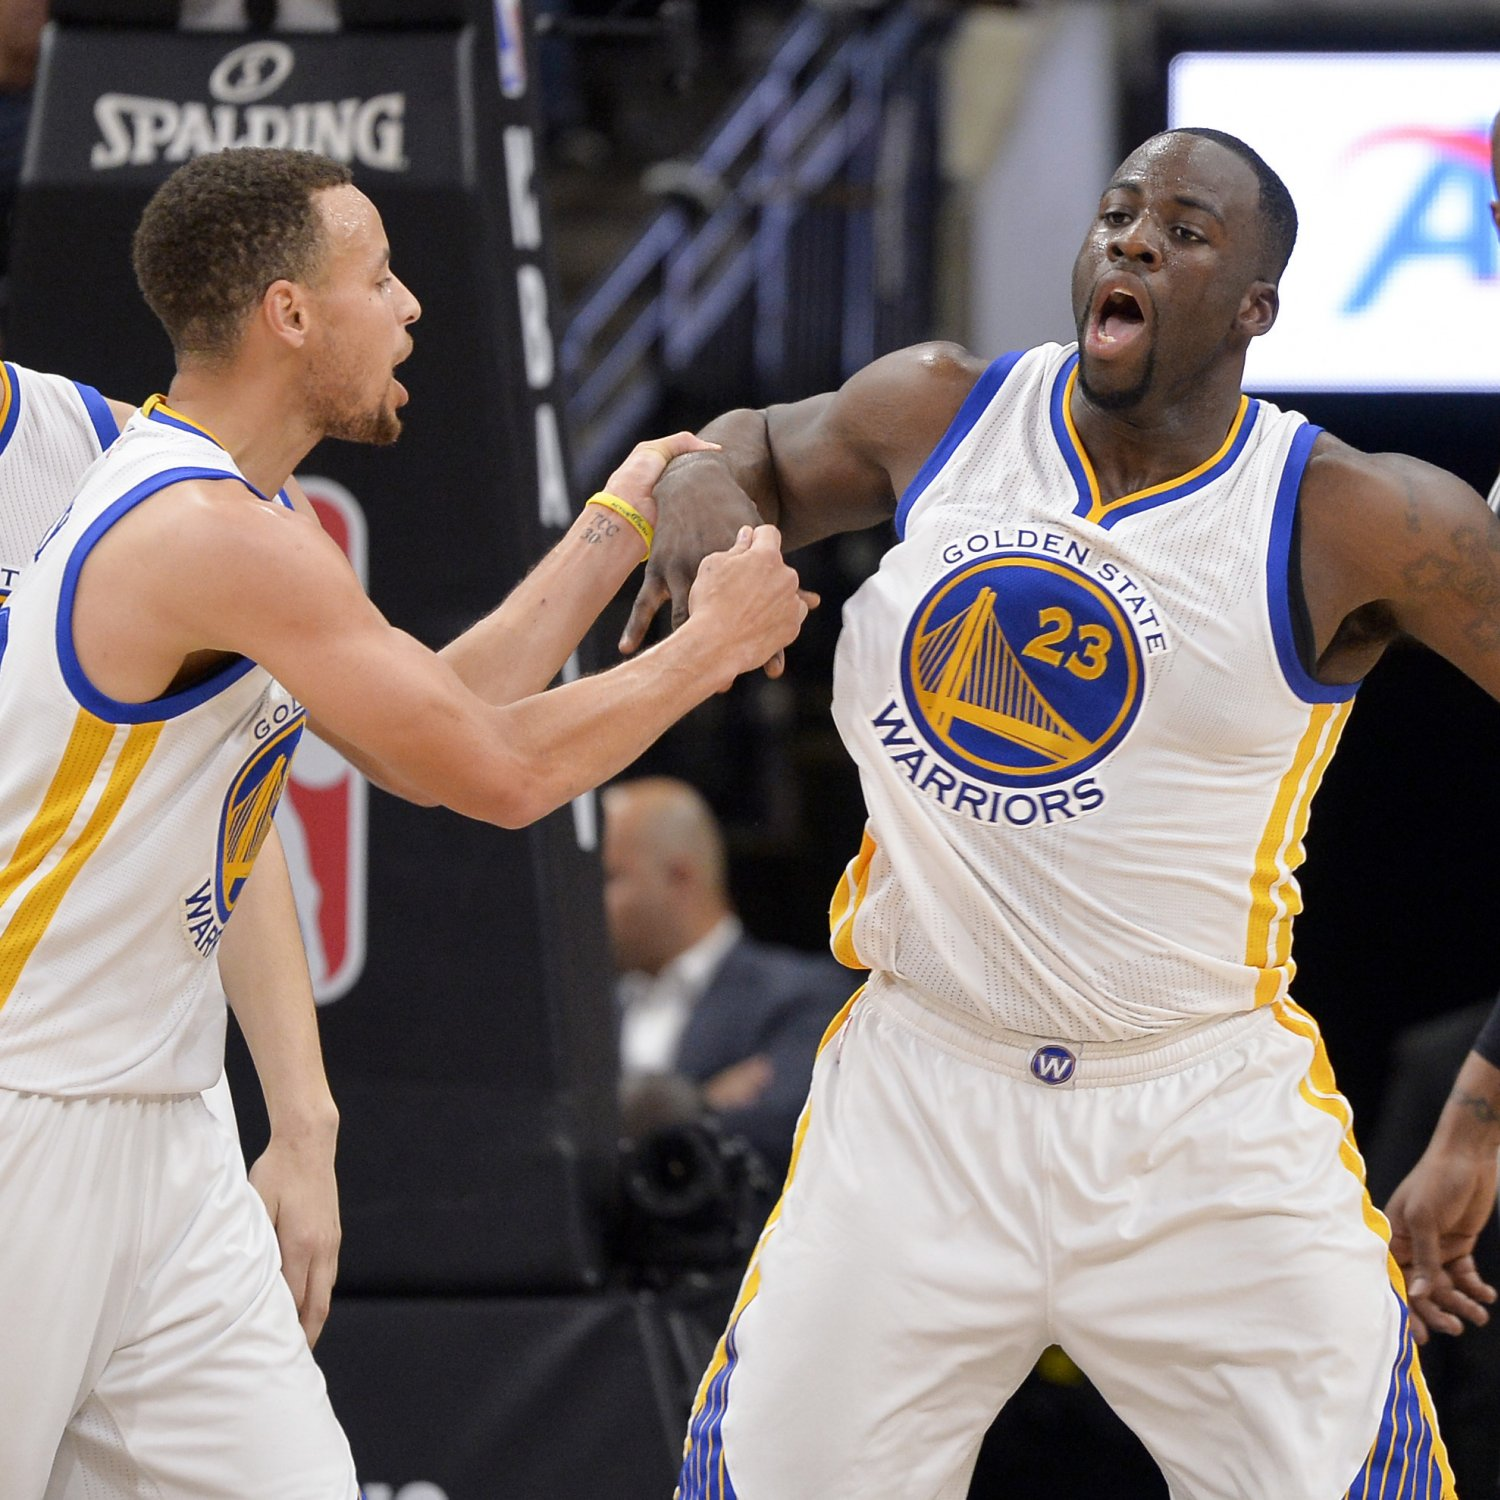 Rockets Vs Warriors Games: Rockets Vs. Warriors: Game 1 Video Highlights And Recap